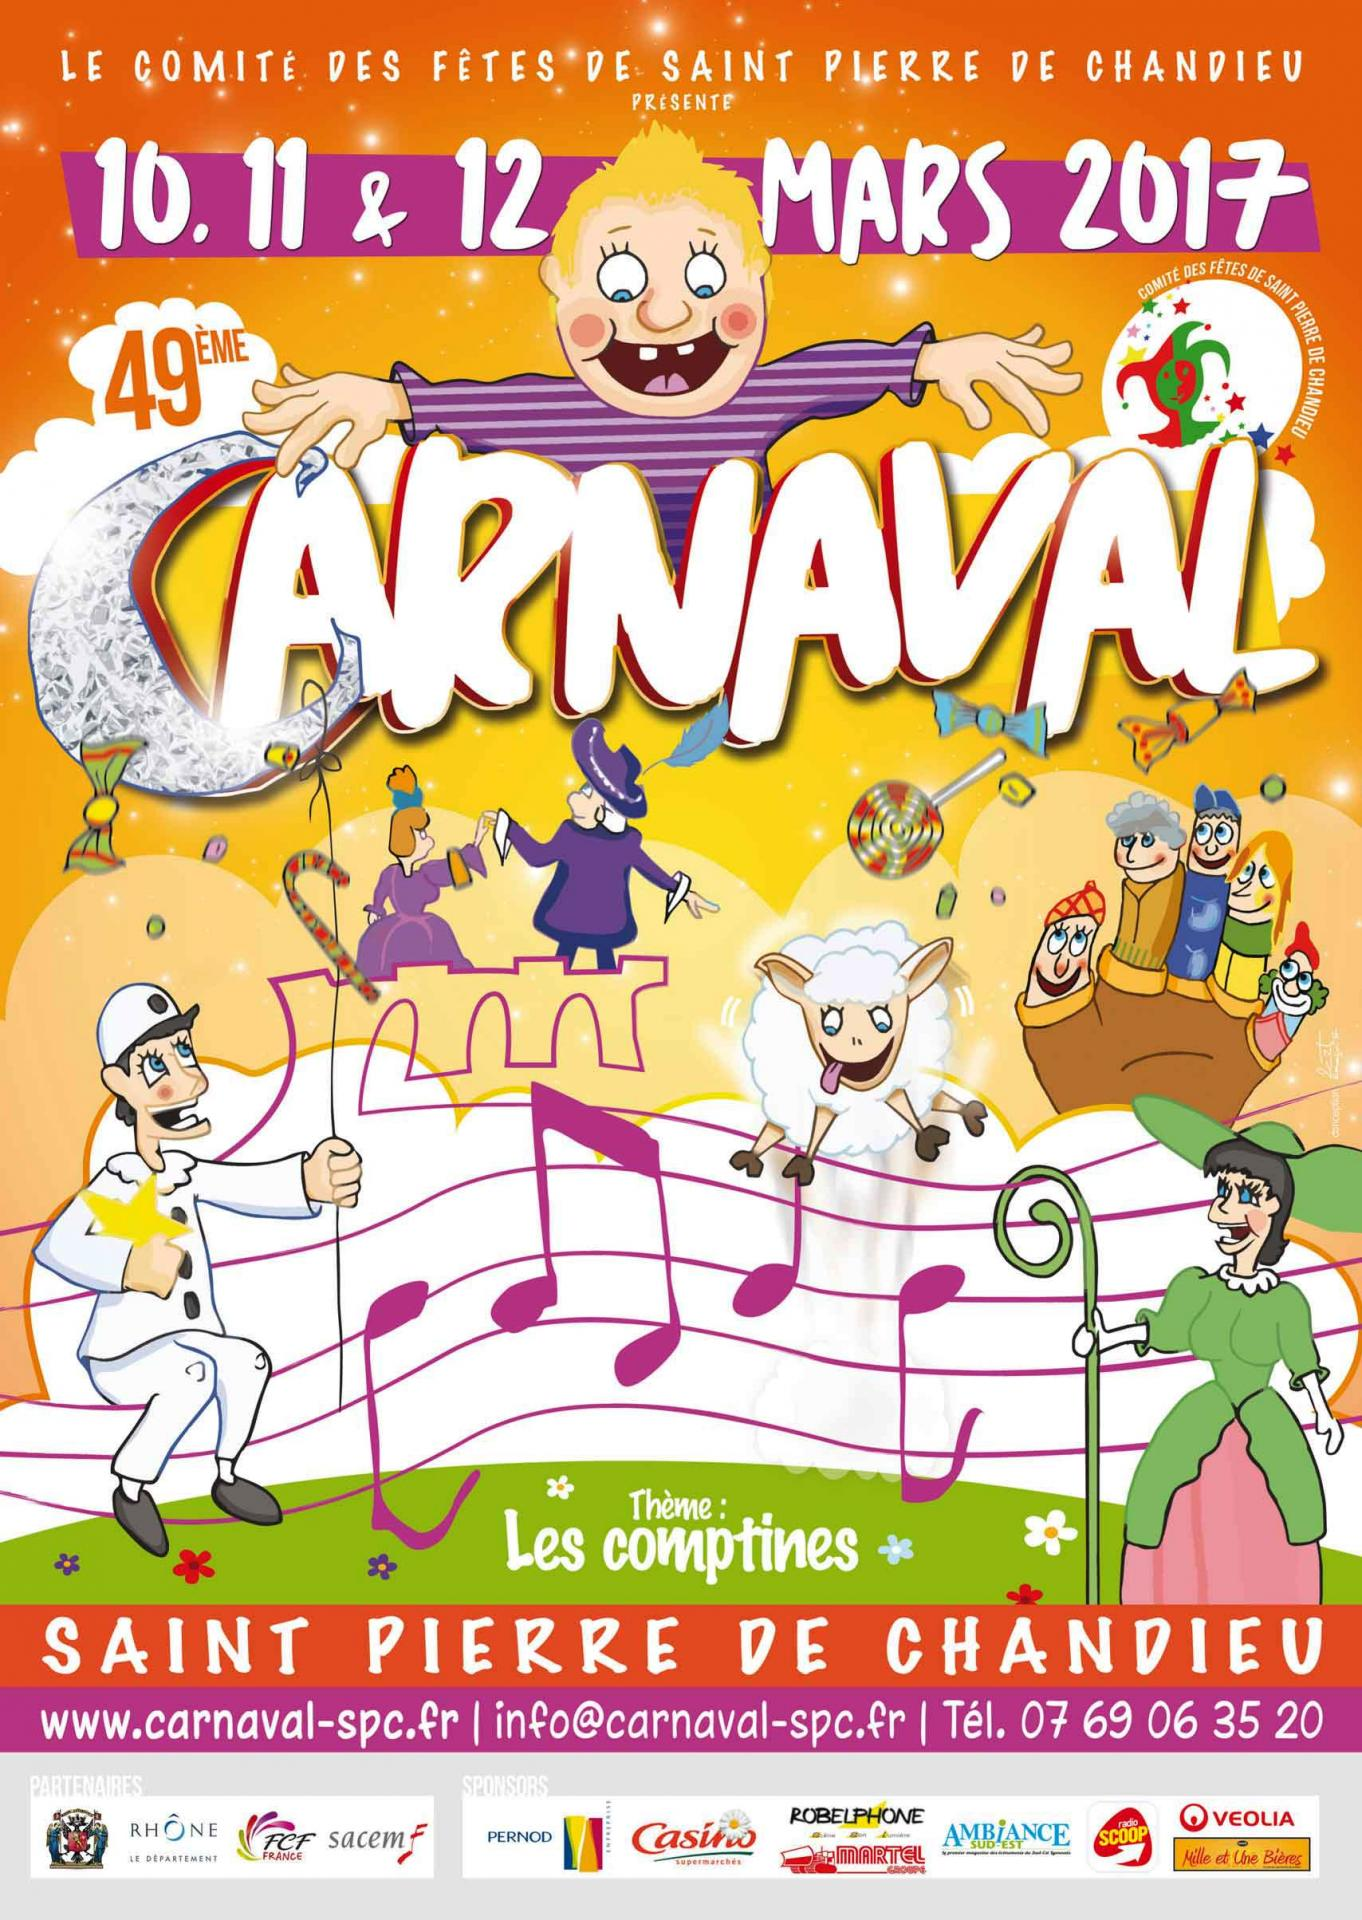 Carnaval saint pierre de chandieu